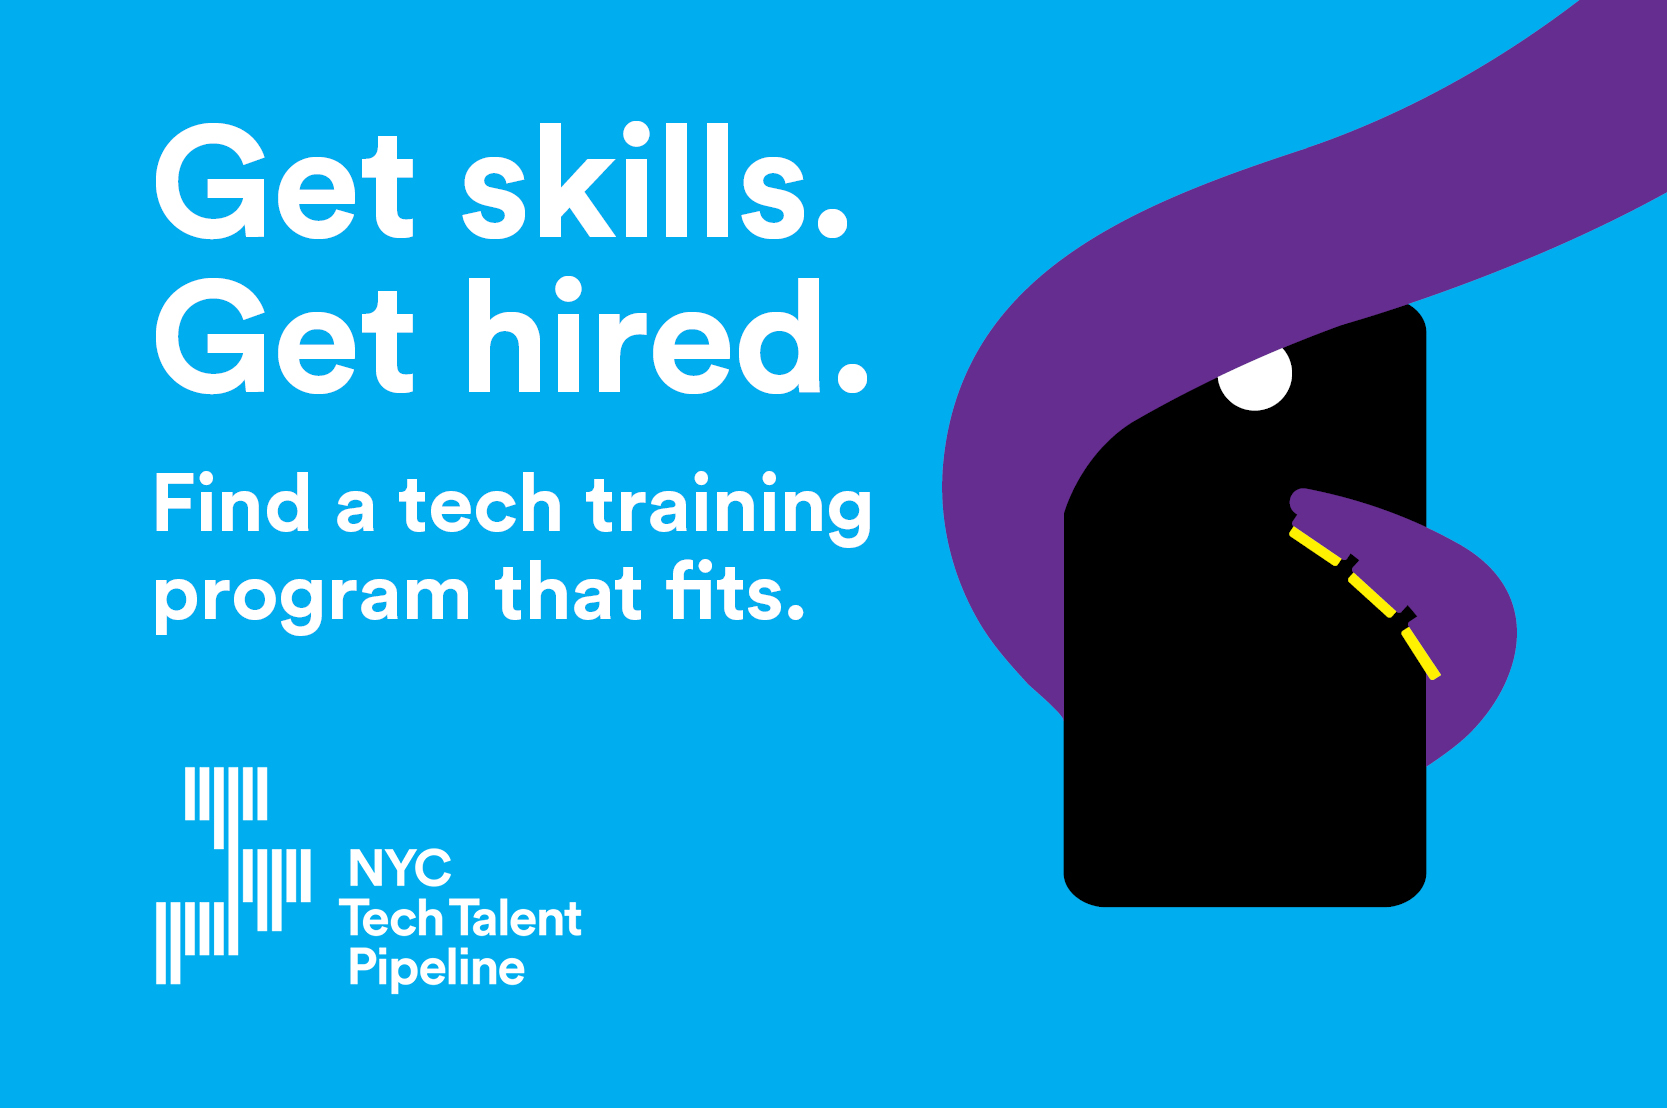 Get skills. Get hired. Find a tech training program that fits.